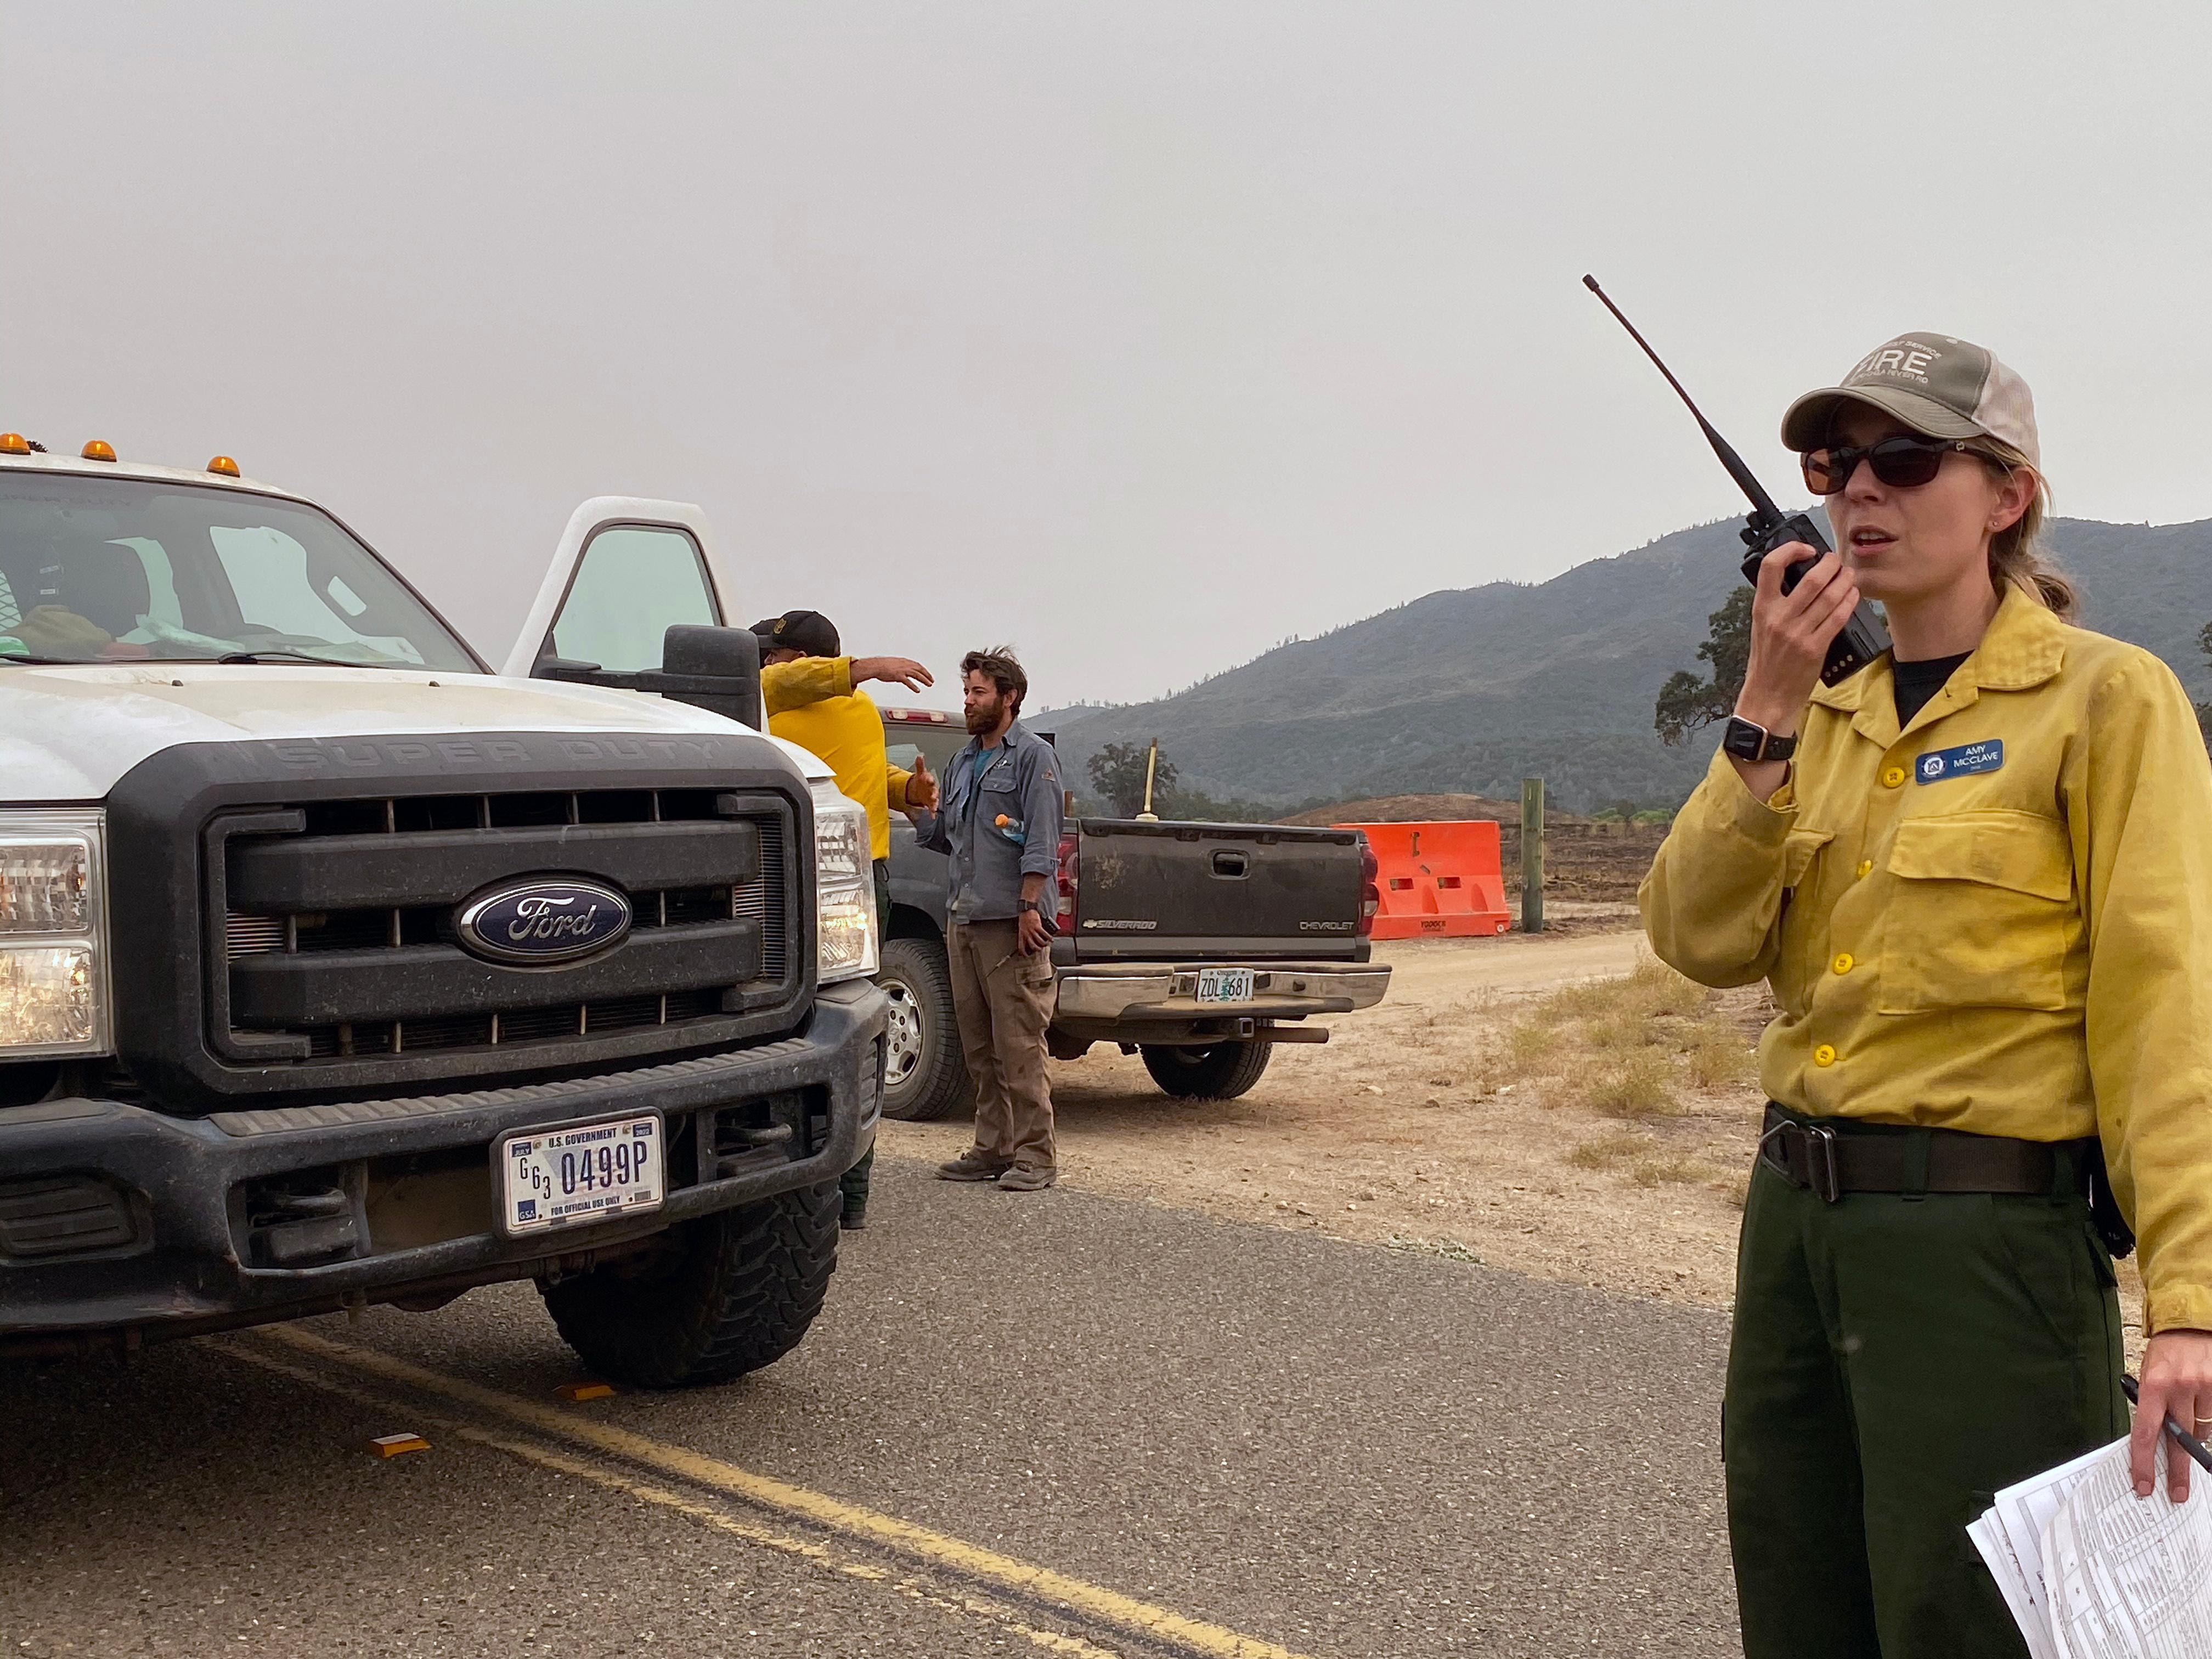 A female firefighter speaks into a radio while standing next to a truck.